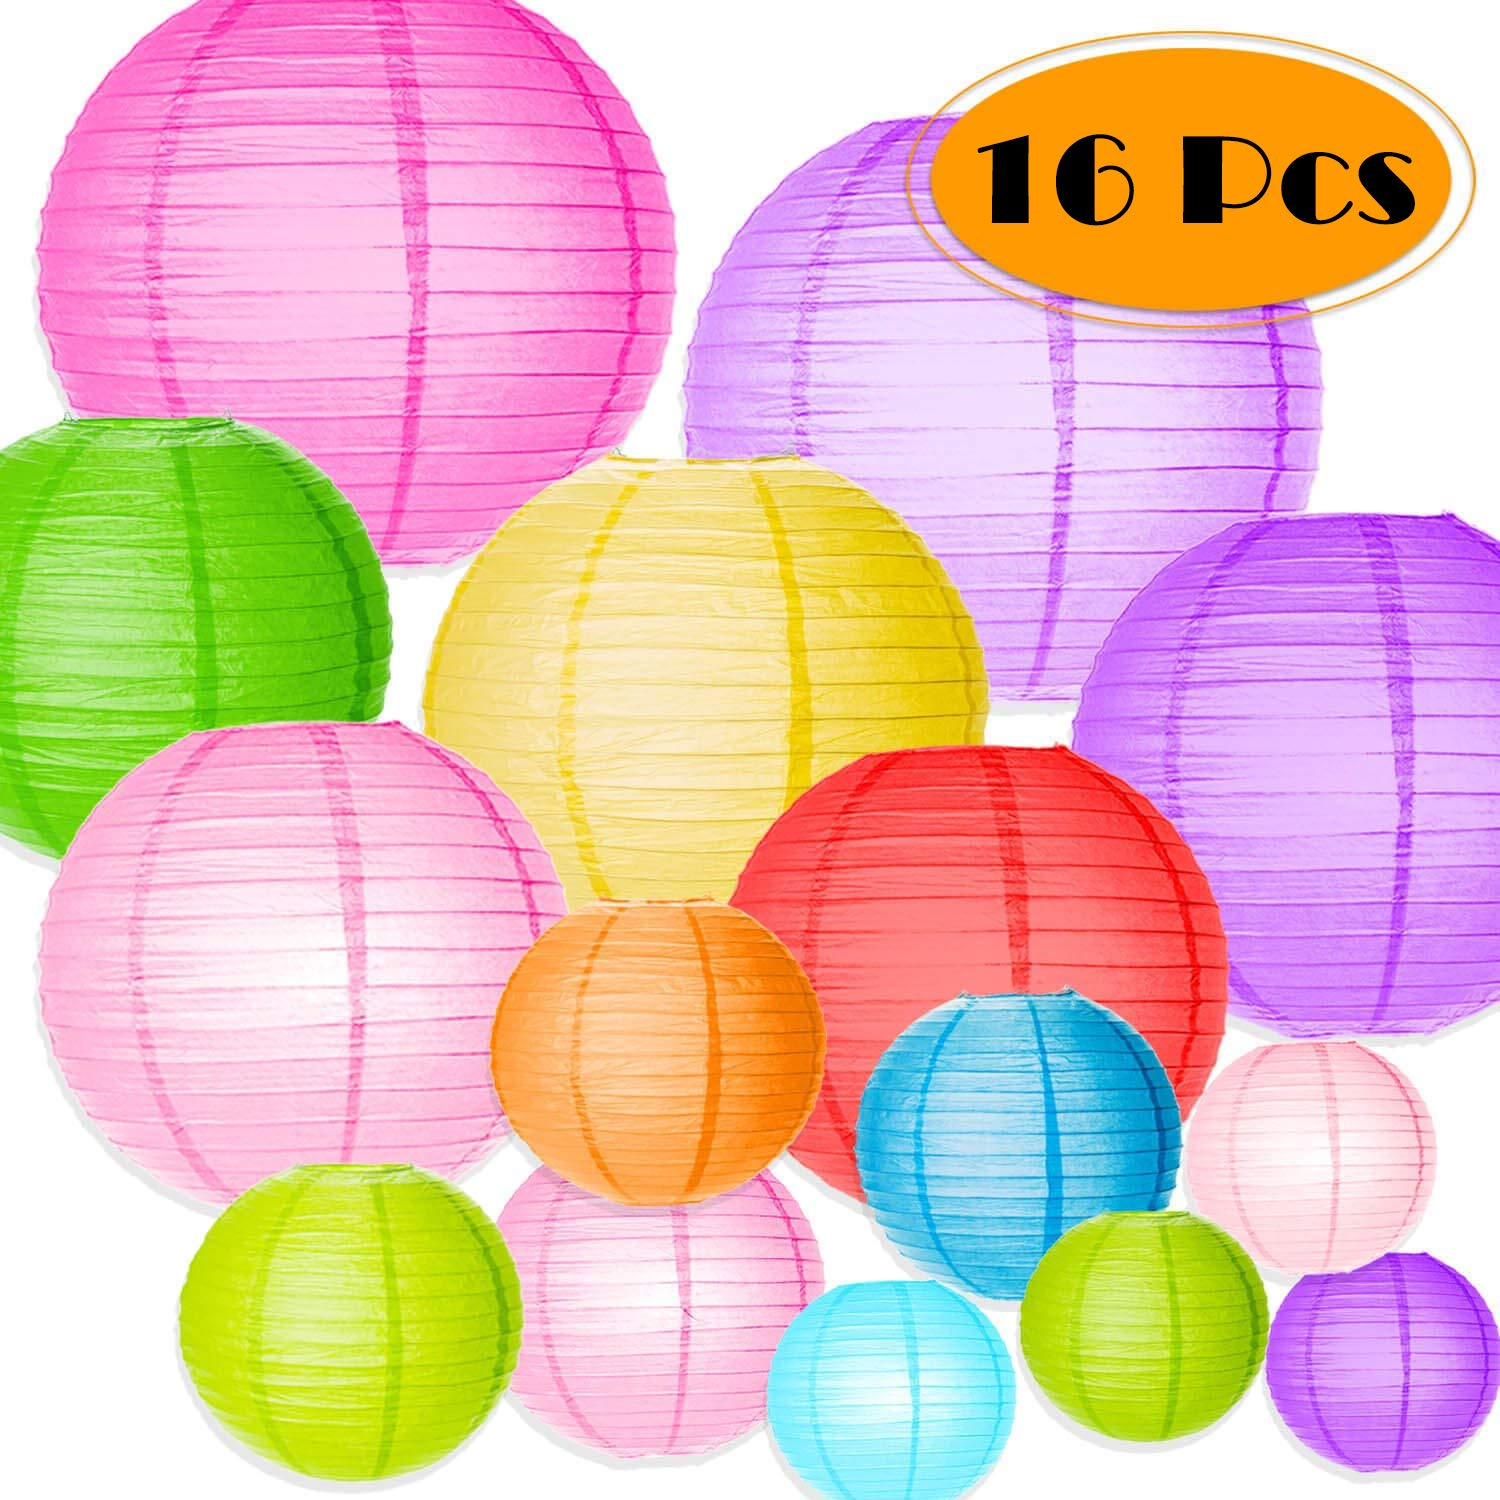 Bulaby 16 Packs Colorful Round Paper Lanterns Chinese Lantern Balloon Hanging Decorations with Assorted Sizes for Wedding Party Decorations